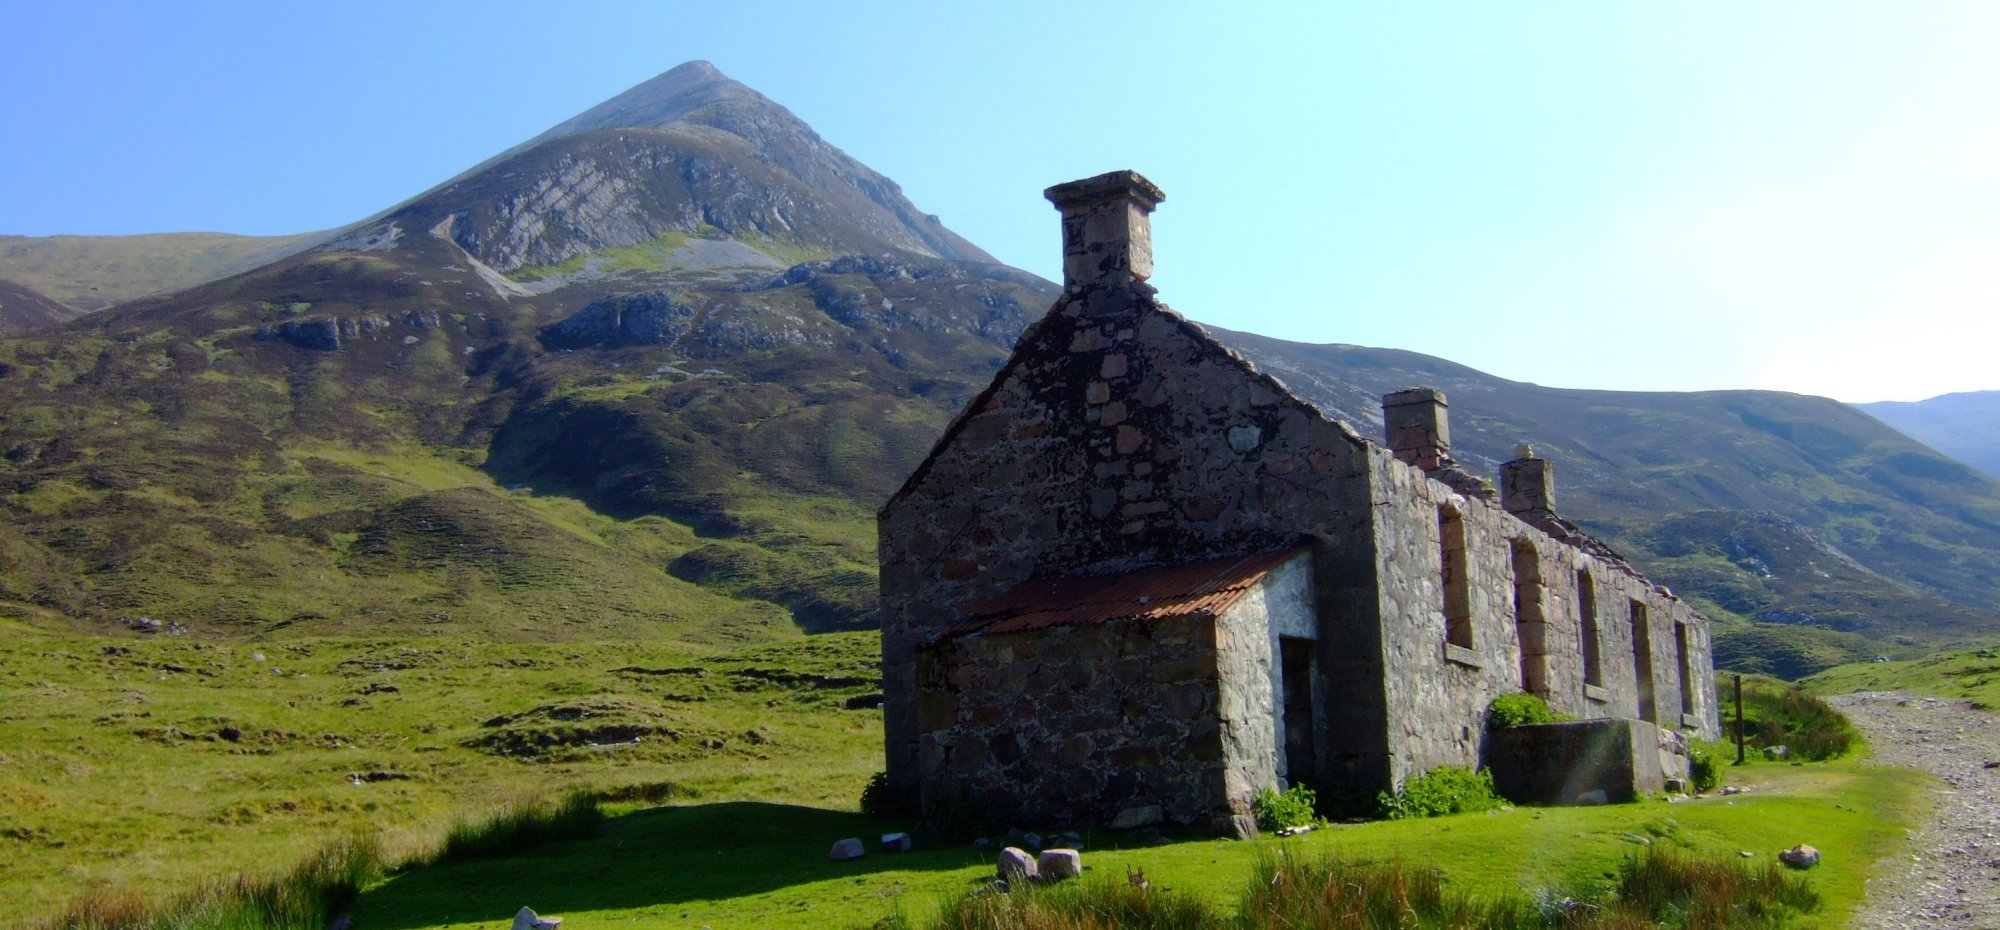 The ruined farmhouse at Tigh-na-sleubhaich